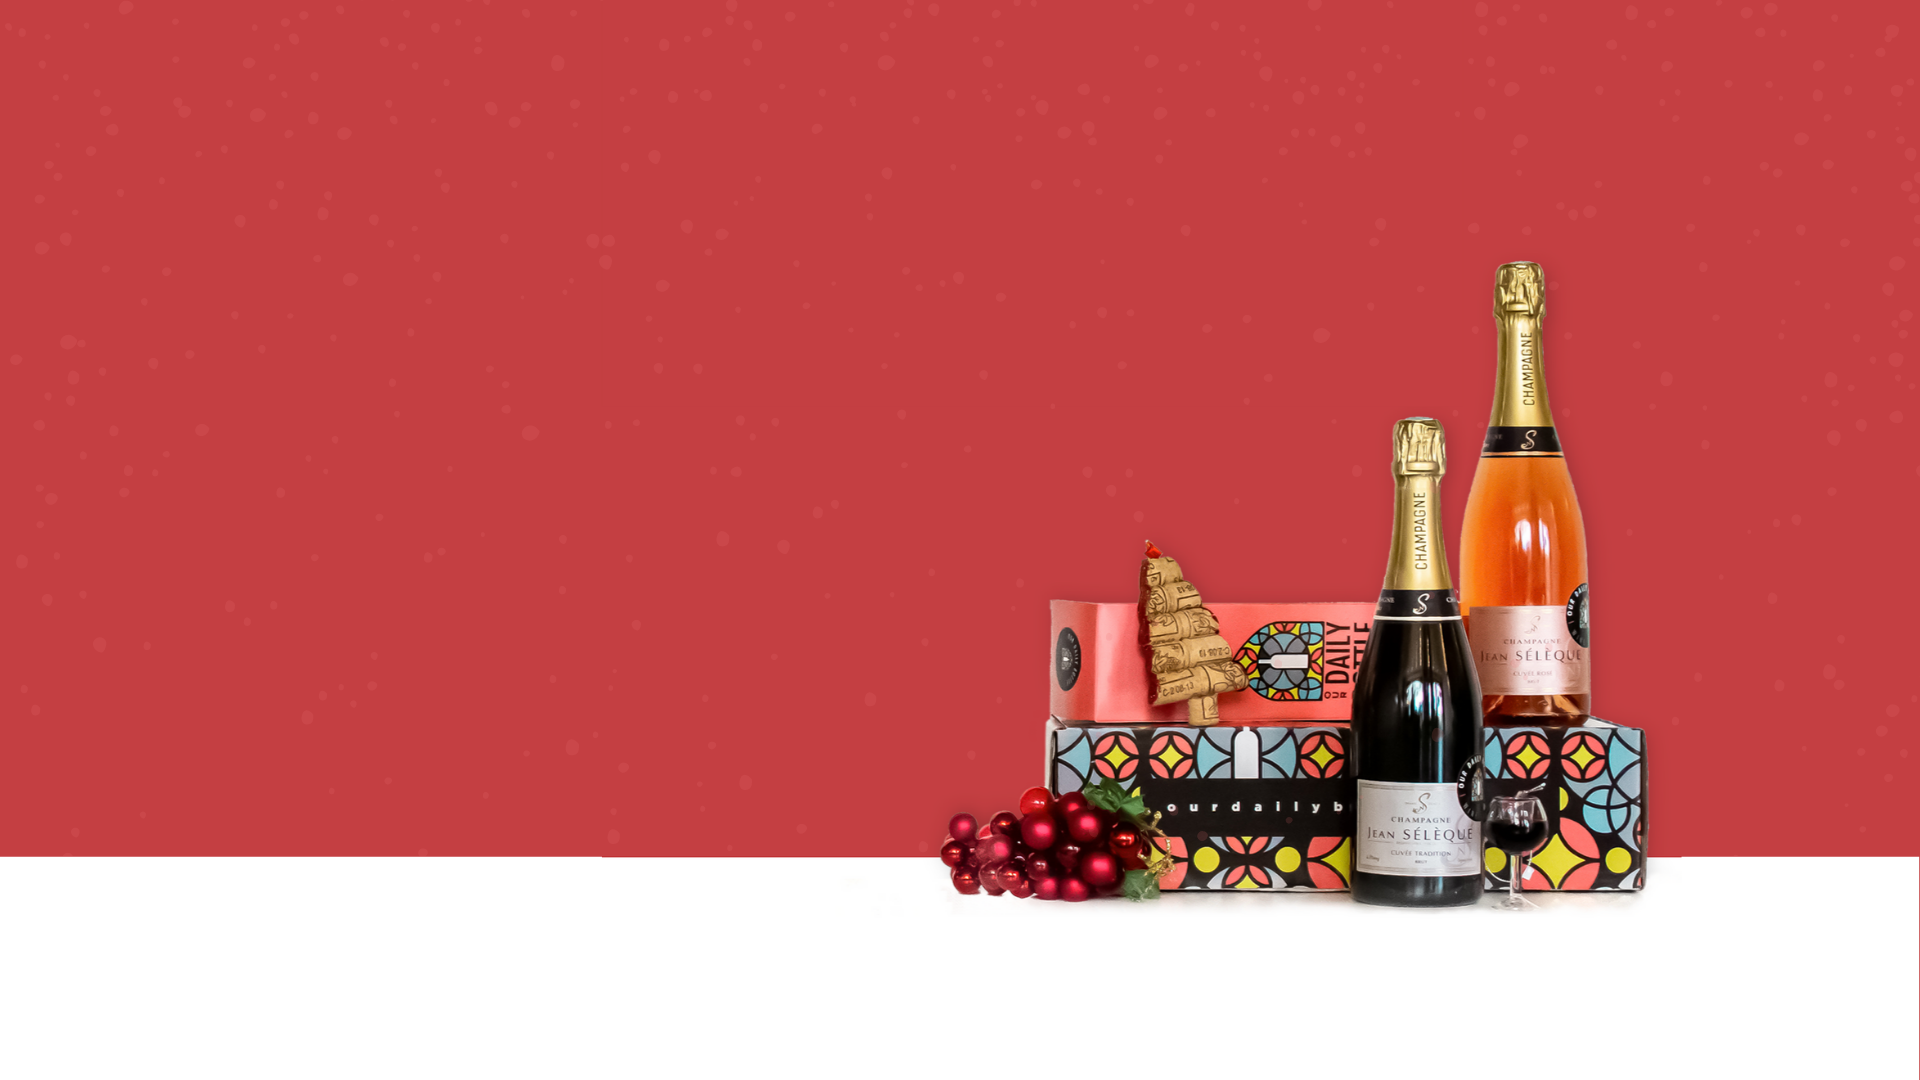 IT's 2020. We're only giving wine as a gift this year.